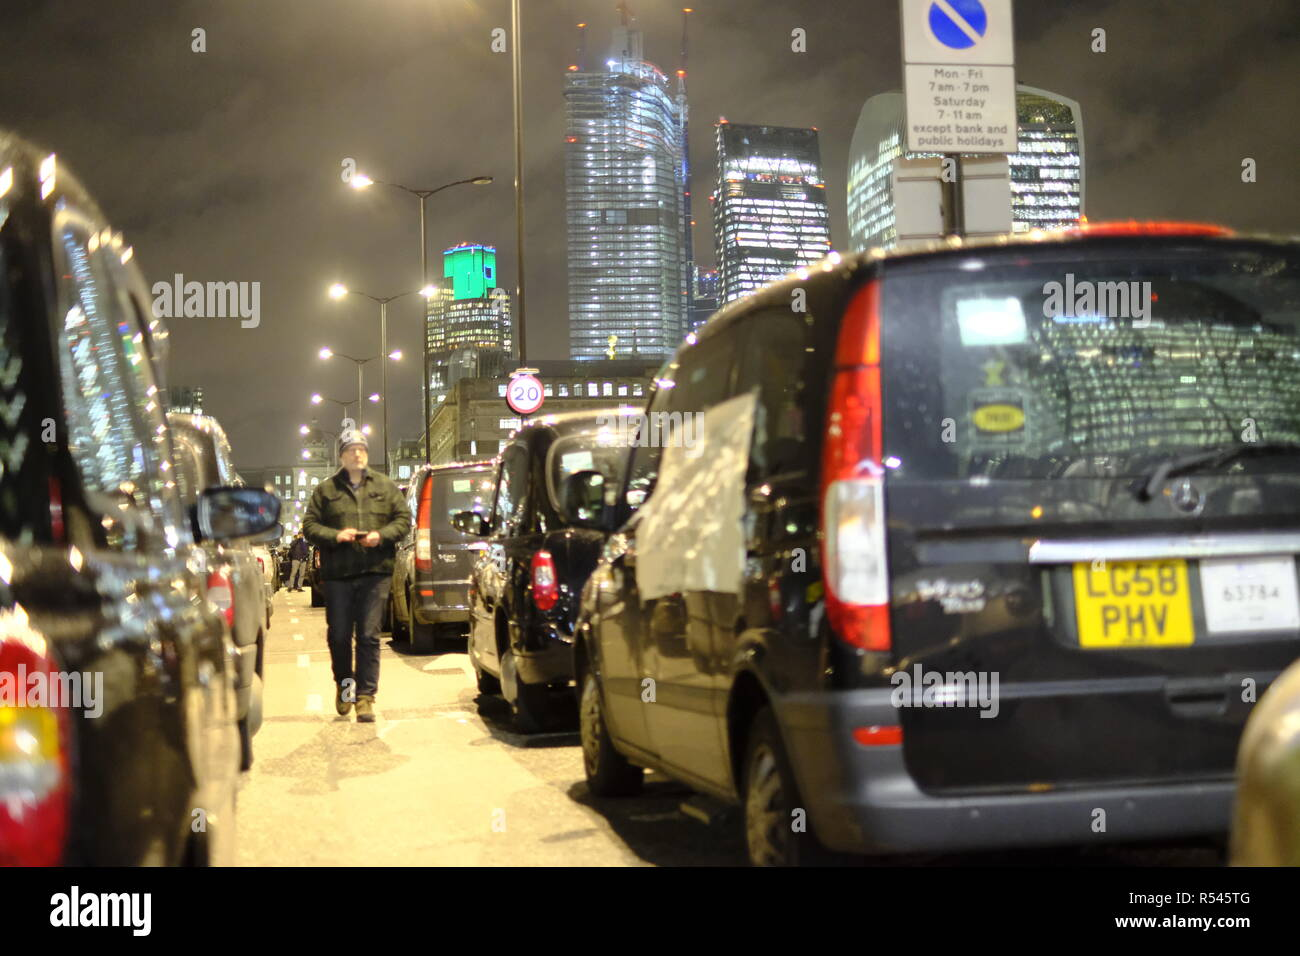 London, UK, 28th November, 2018. London cabbies block London Bridge. Credit: Martin Kelly/Alamy Live News. Stock Photo